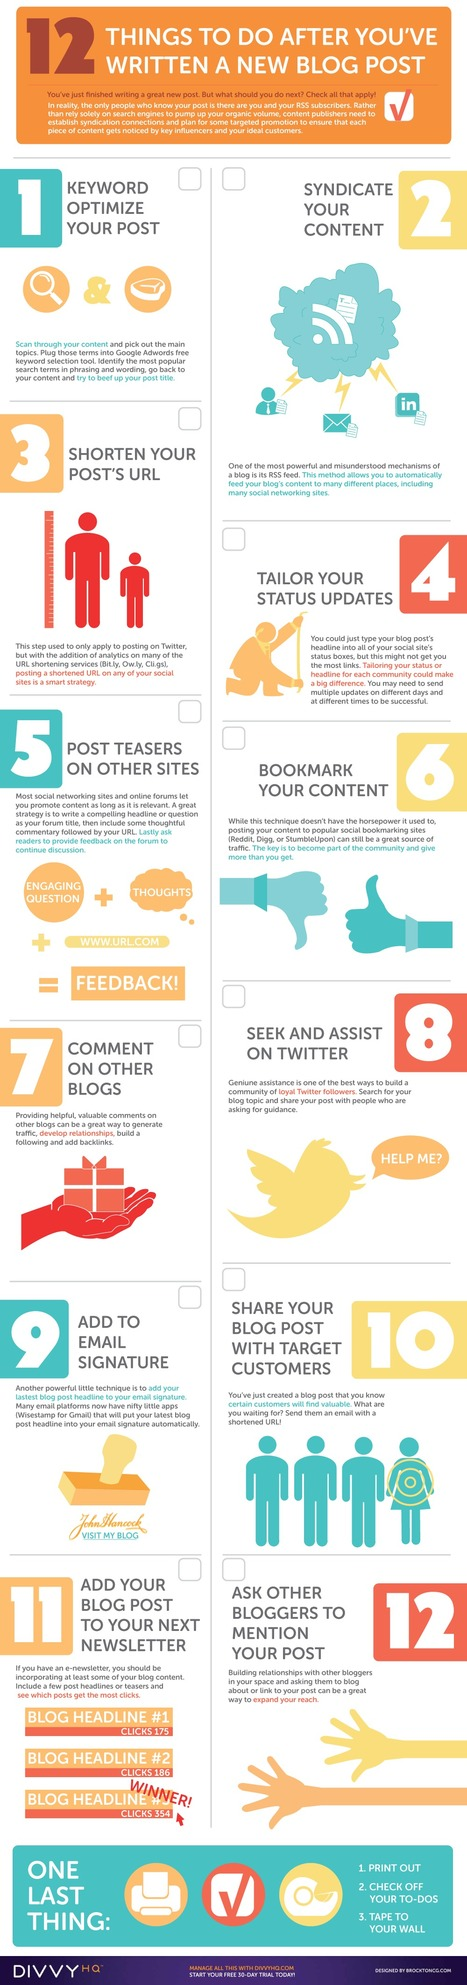 12 Things To Do After You've Published a New Blog Post   Infographic   Marketing Revolution   Scoop.it